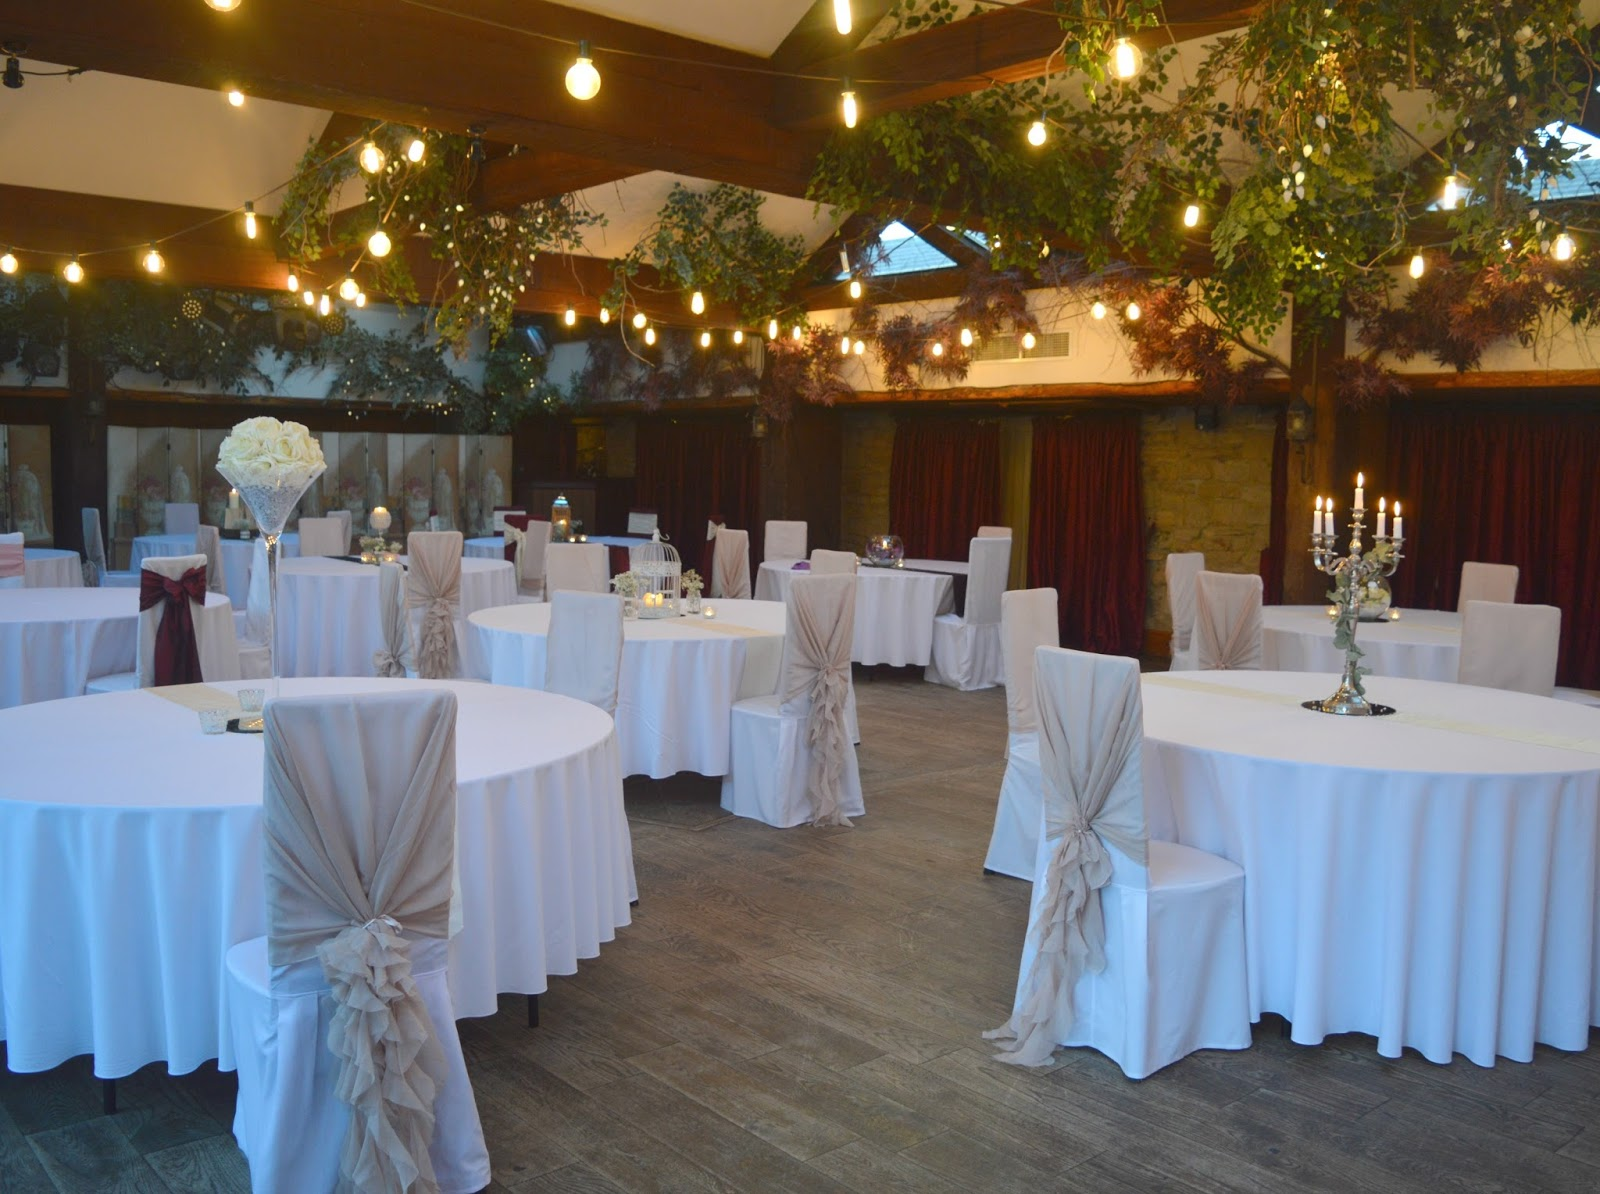 Weddings at the South Causey Inn, County Durham - Durham Suite